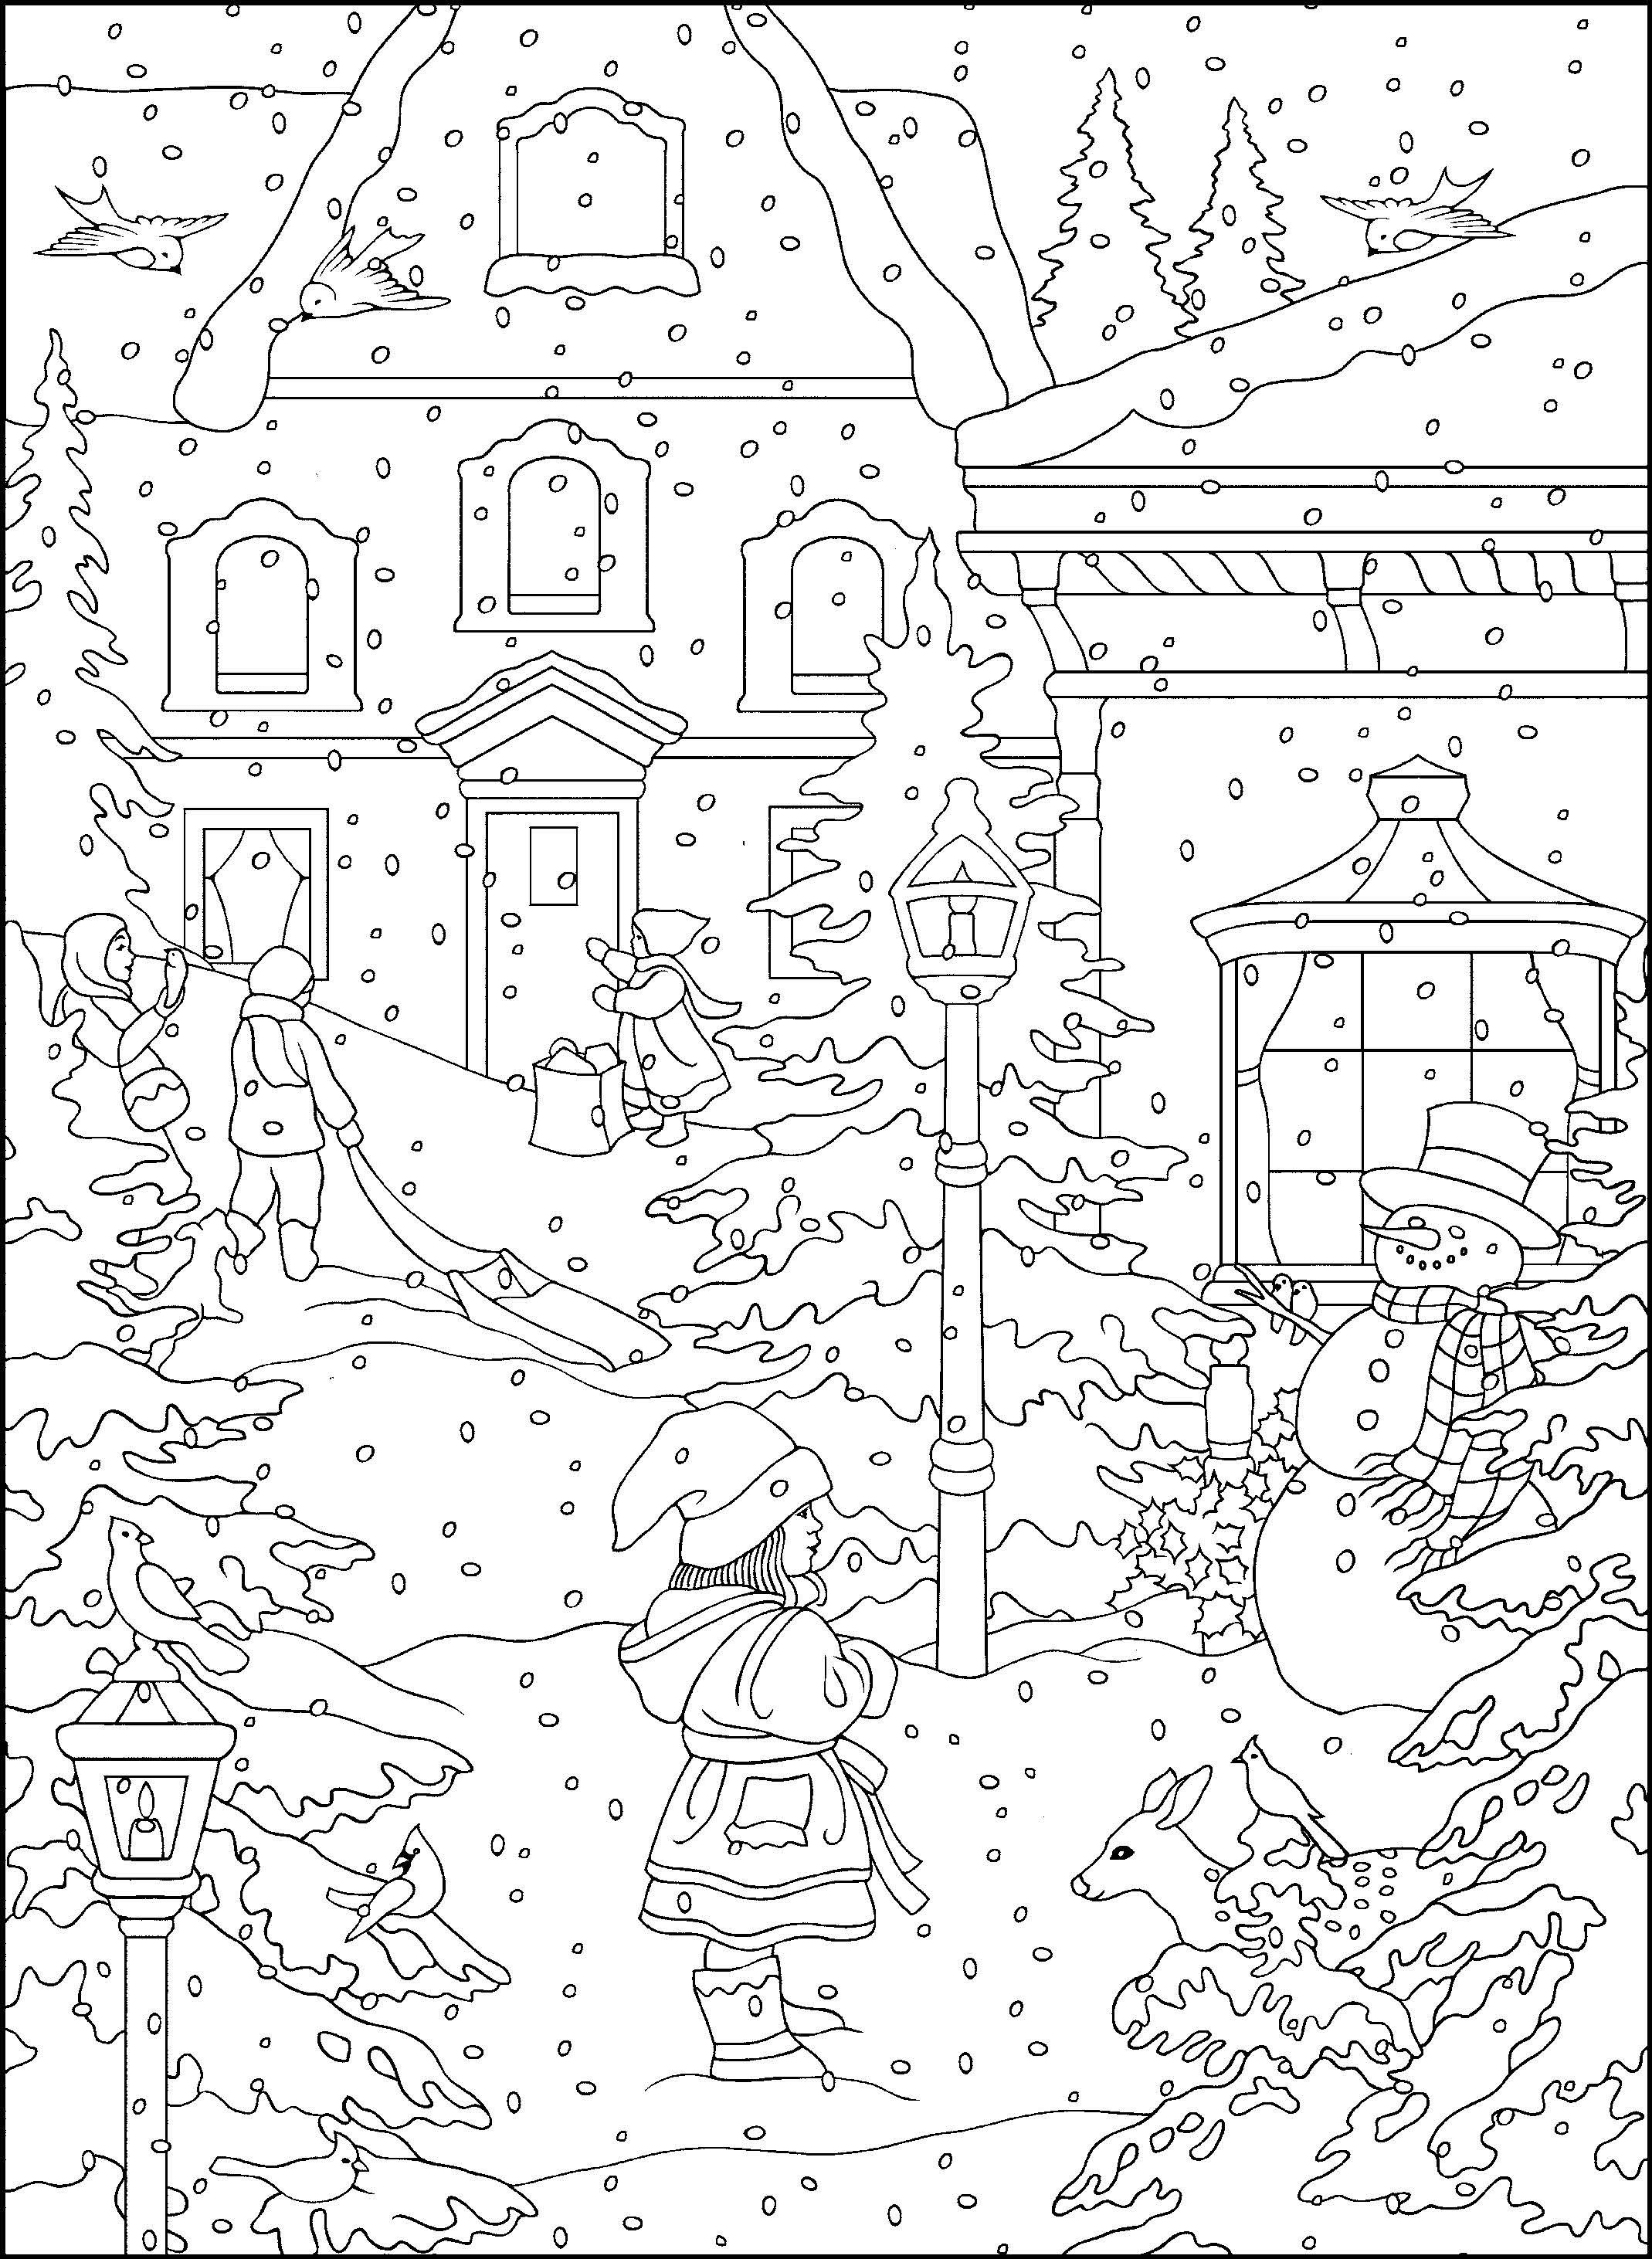 holiday coloring pages_page_4_image_0001jpg jpeg image 2139 2925 pixels scaled adult coloring pagesfree - Holiday Coloring Pages Free